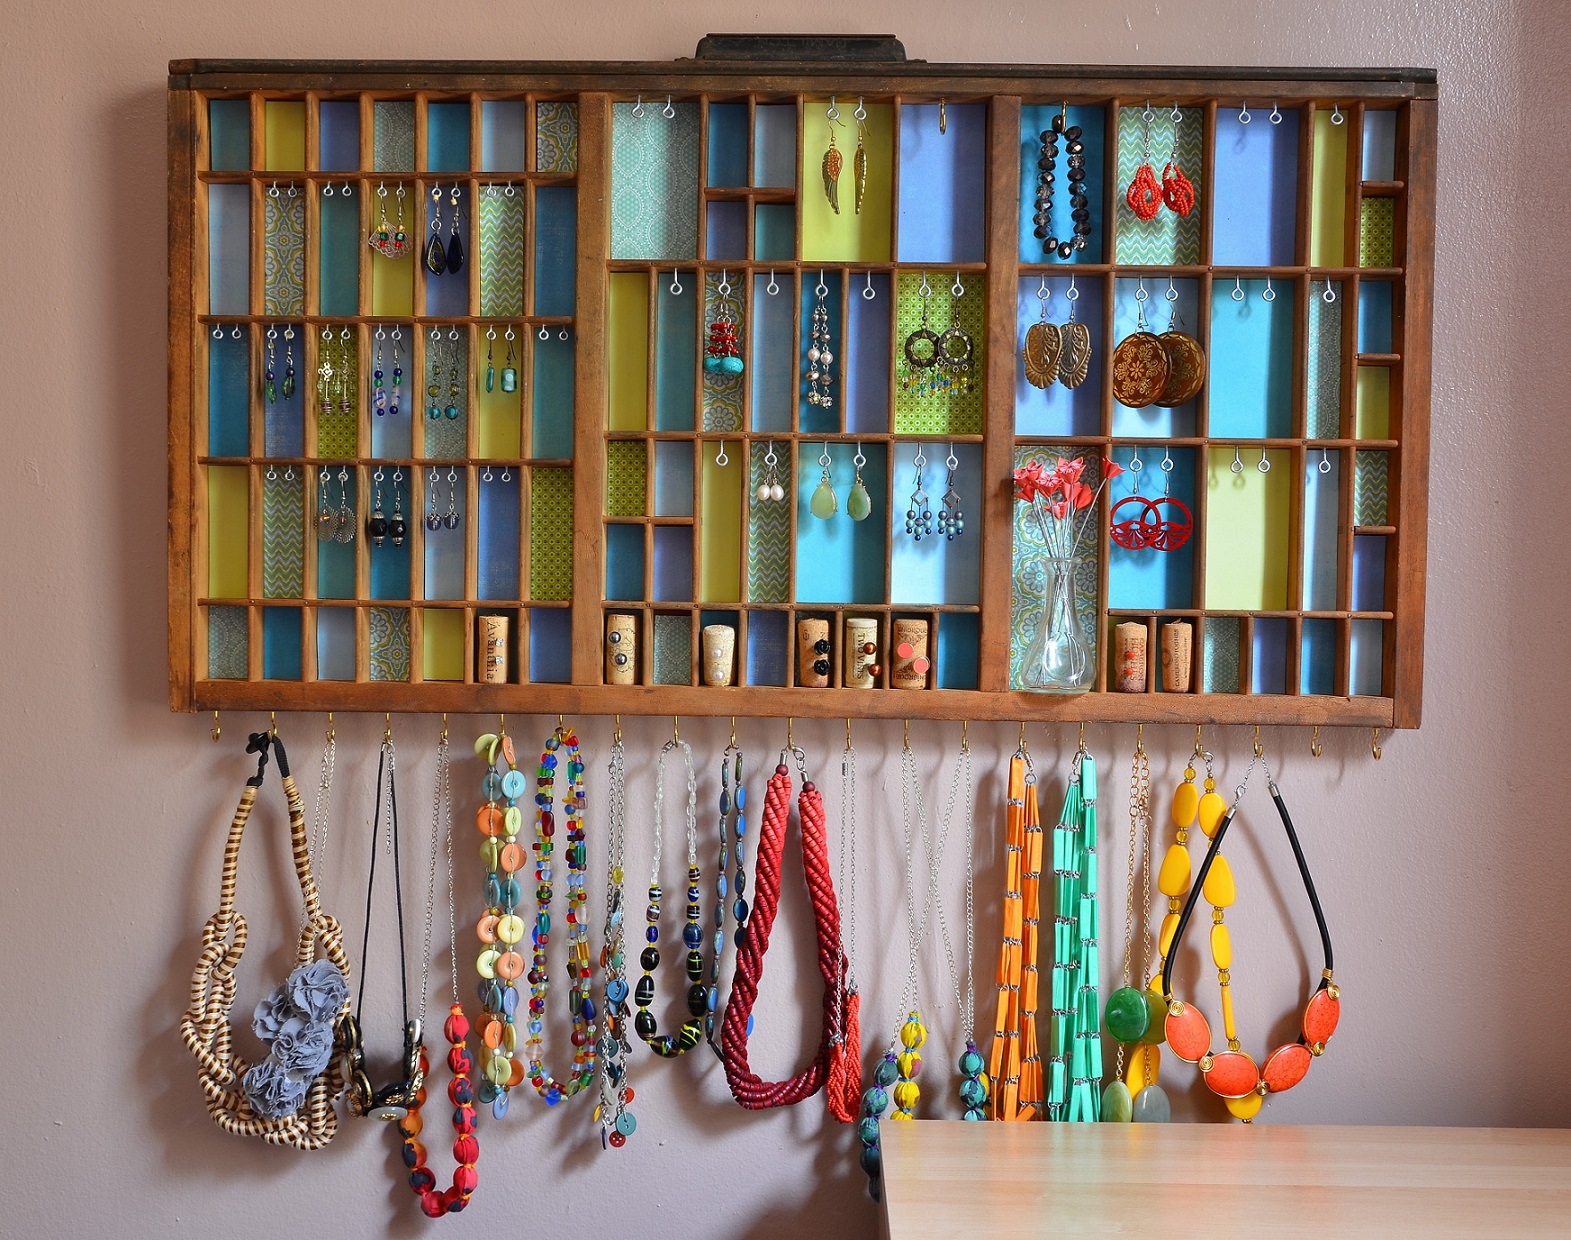 In the bottom part of this colored wood locker, were pinned some hooks, and a creative way to hold your jewelry necklace was taken place.